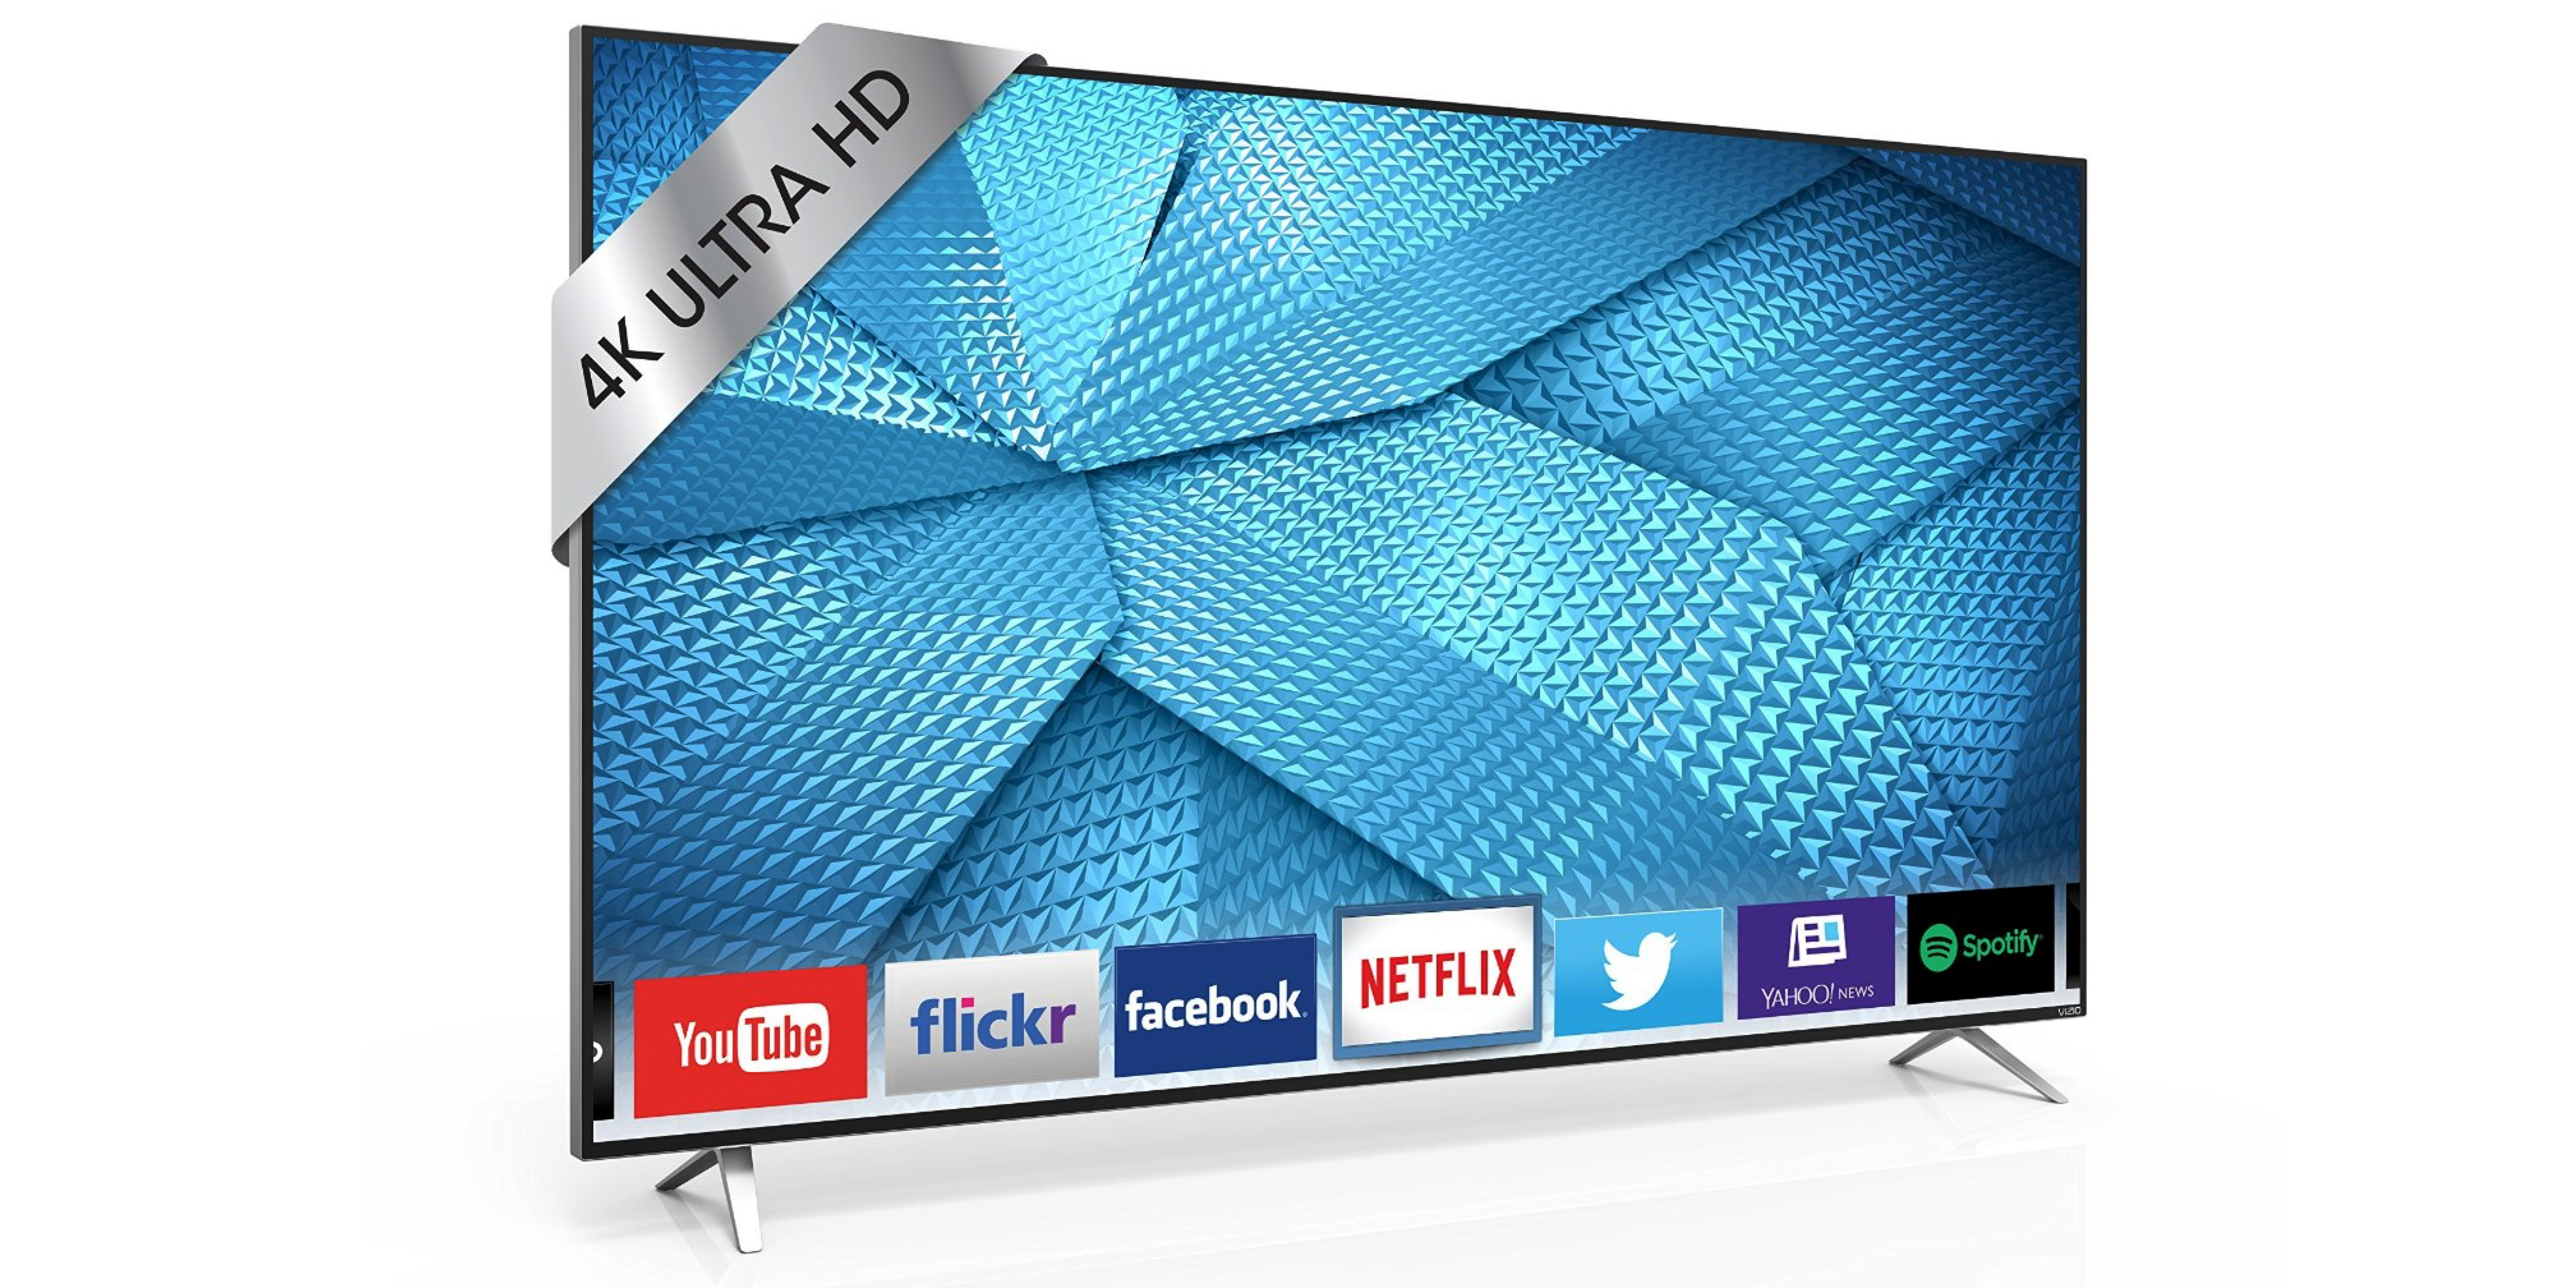 Vizios 70 Inch 240hz Smart 4k Uhdtv Hits Its Lowest Price 1799